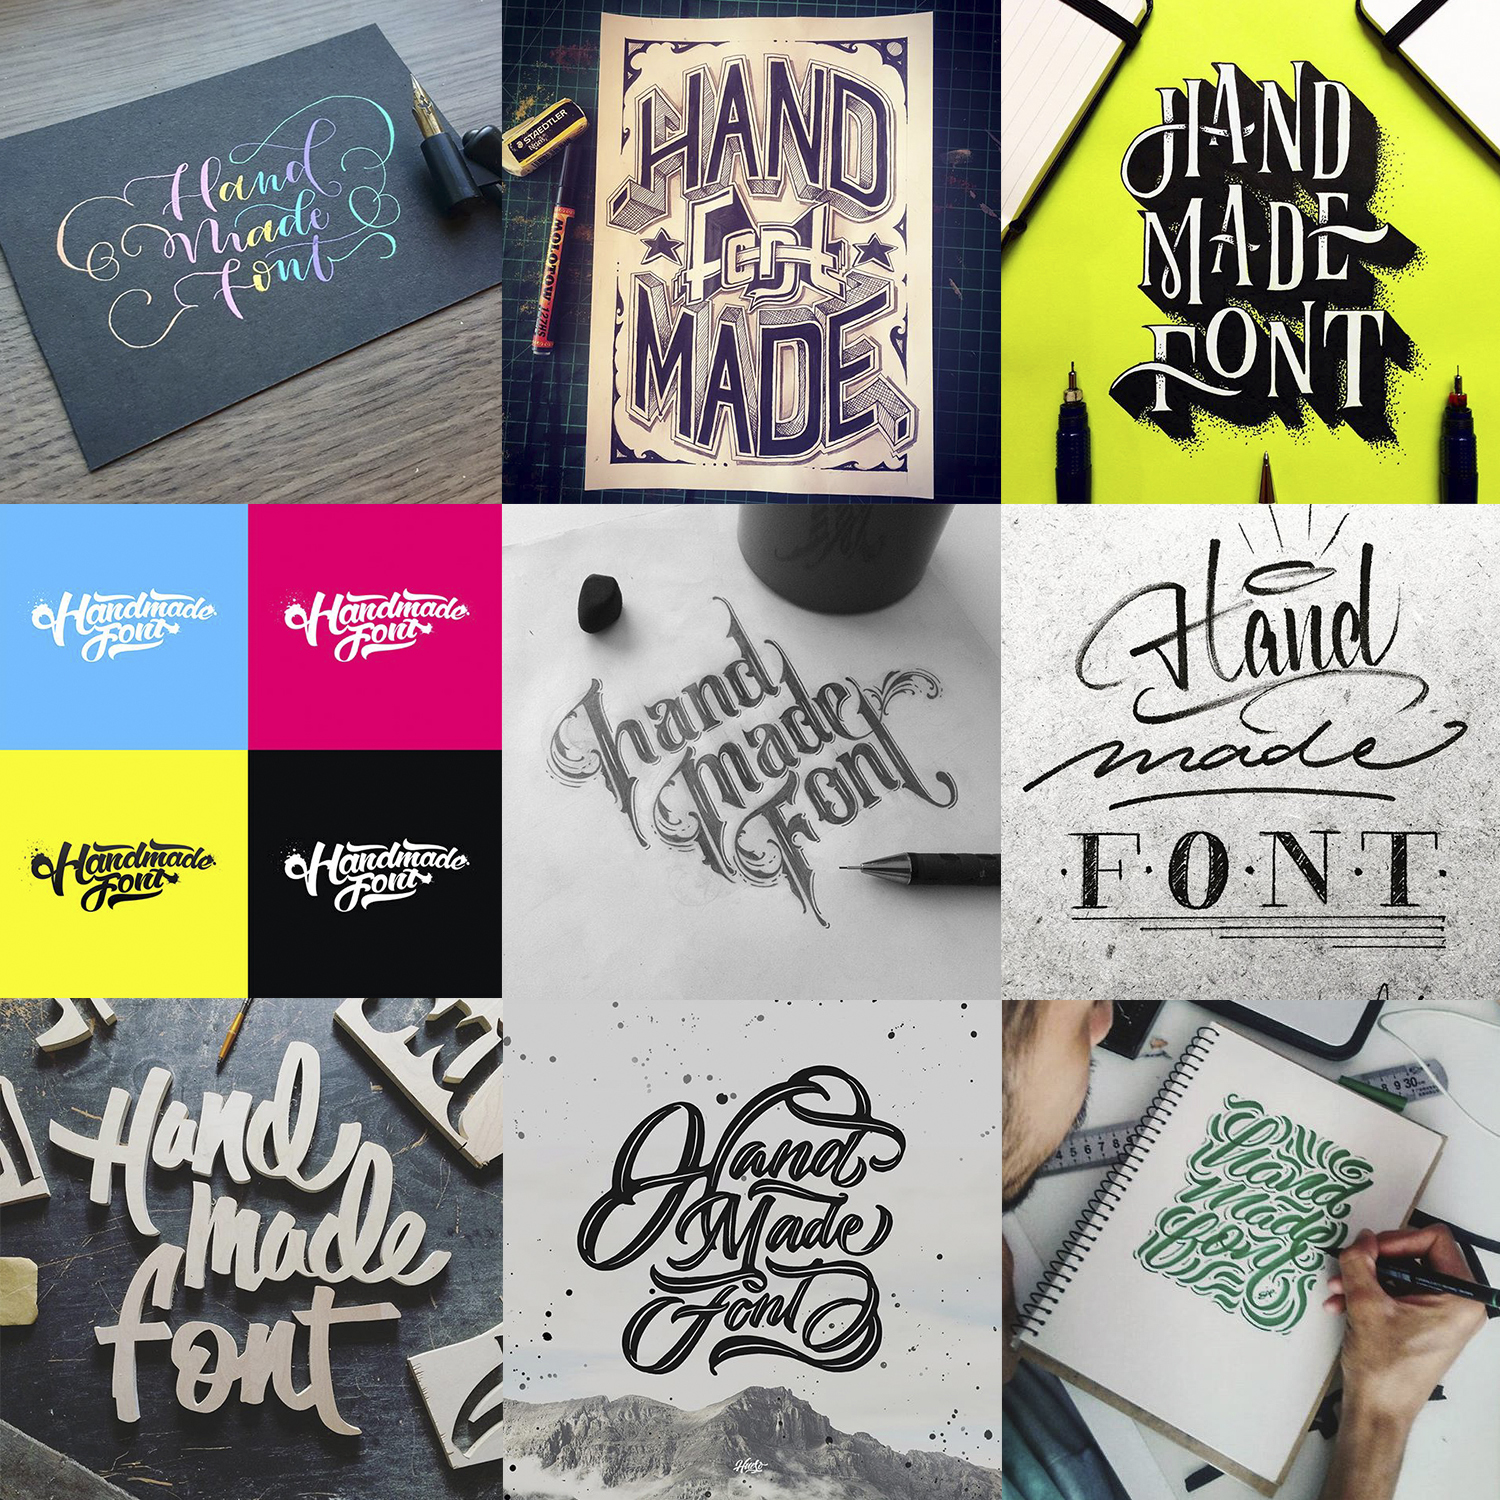 hand made font various creative logos